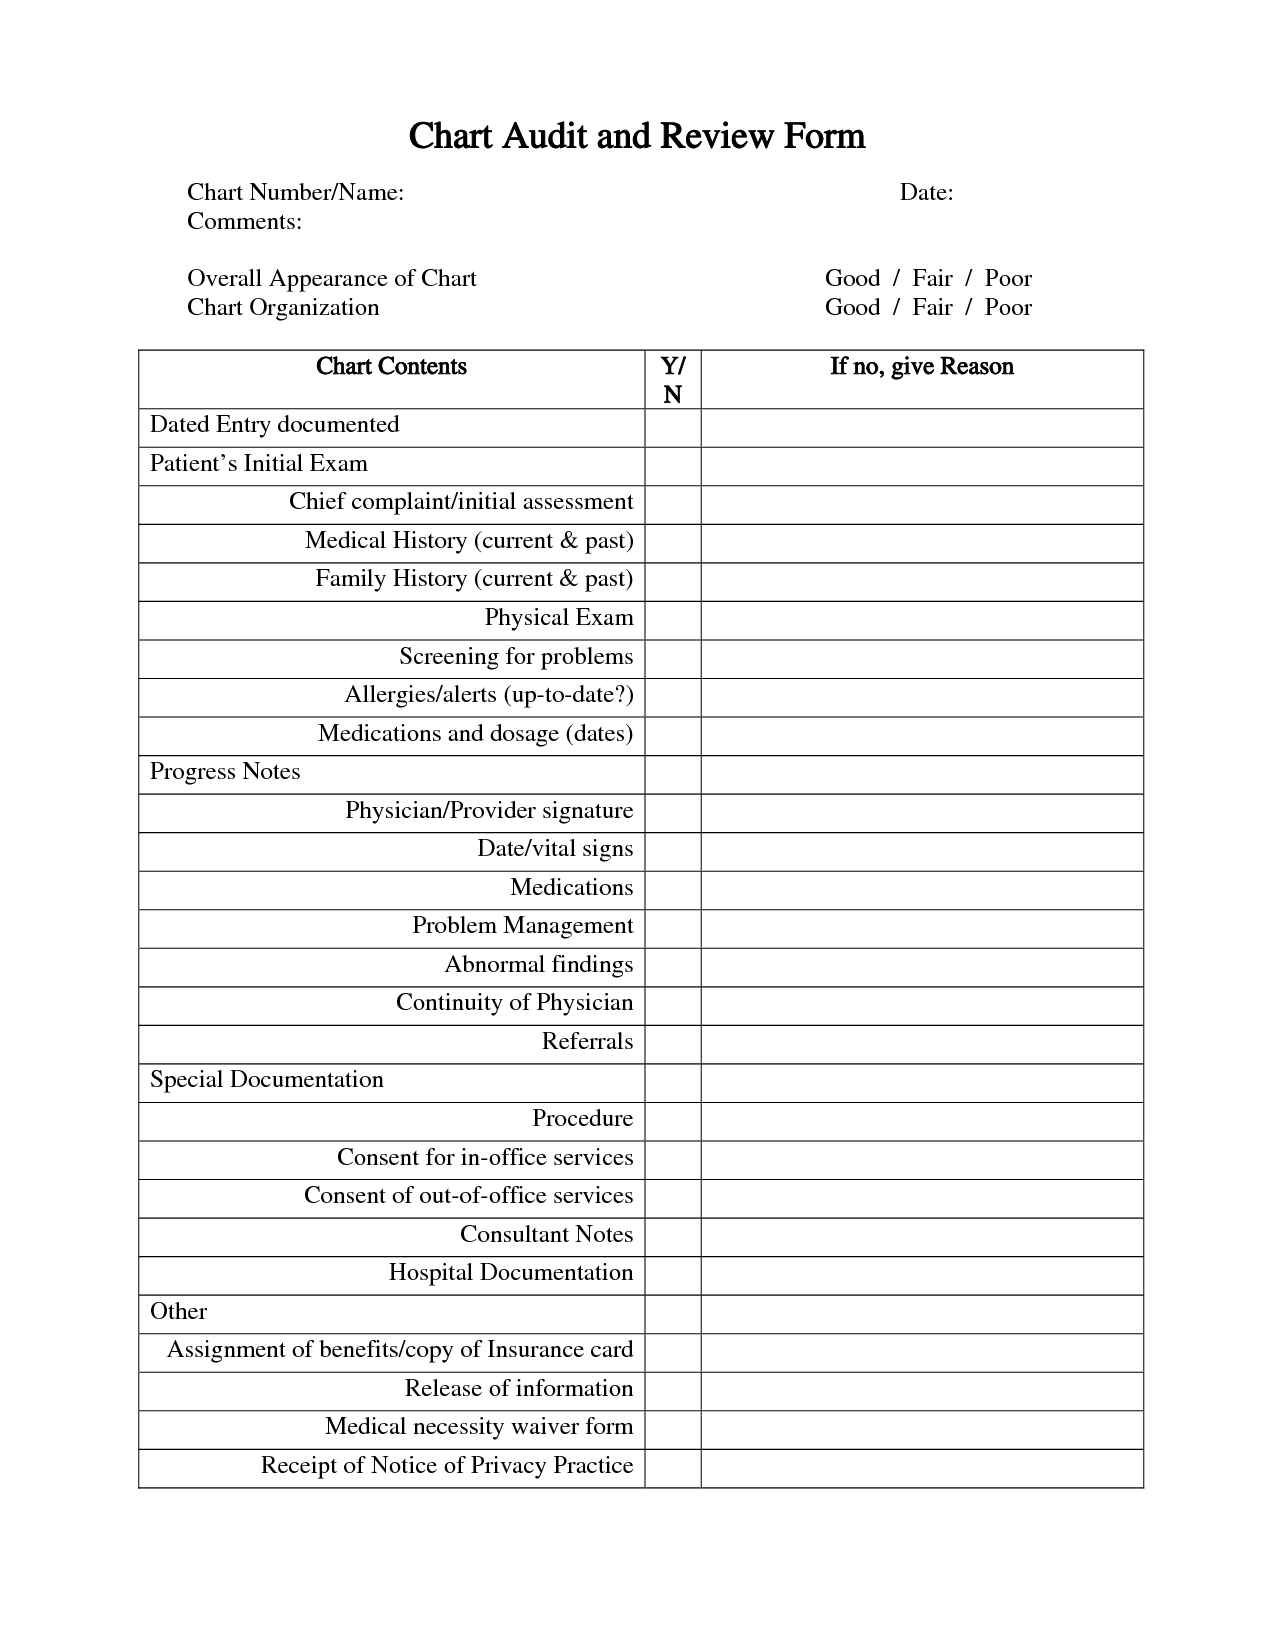 Free Medical Chart Audit Forms